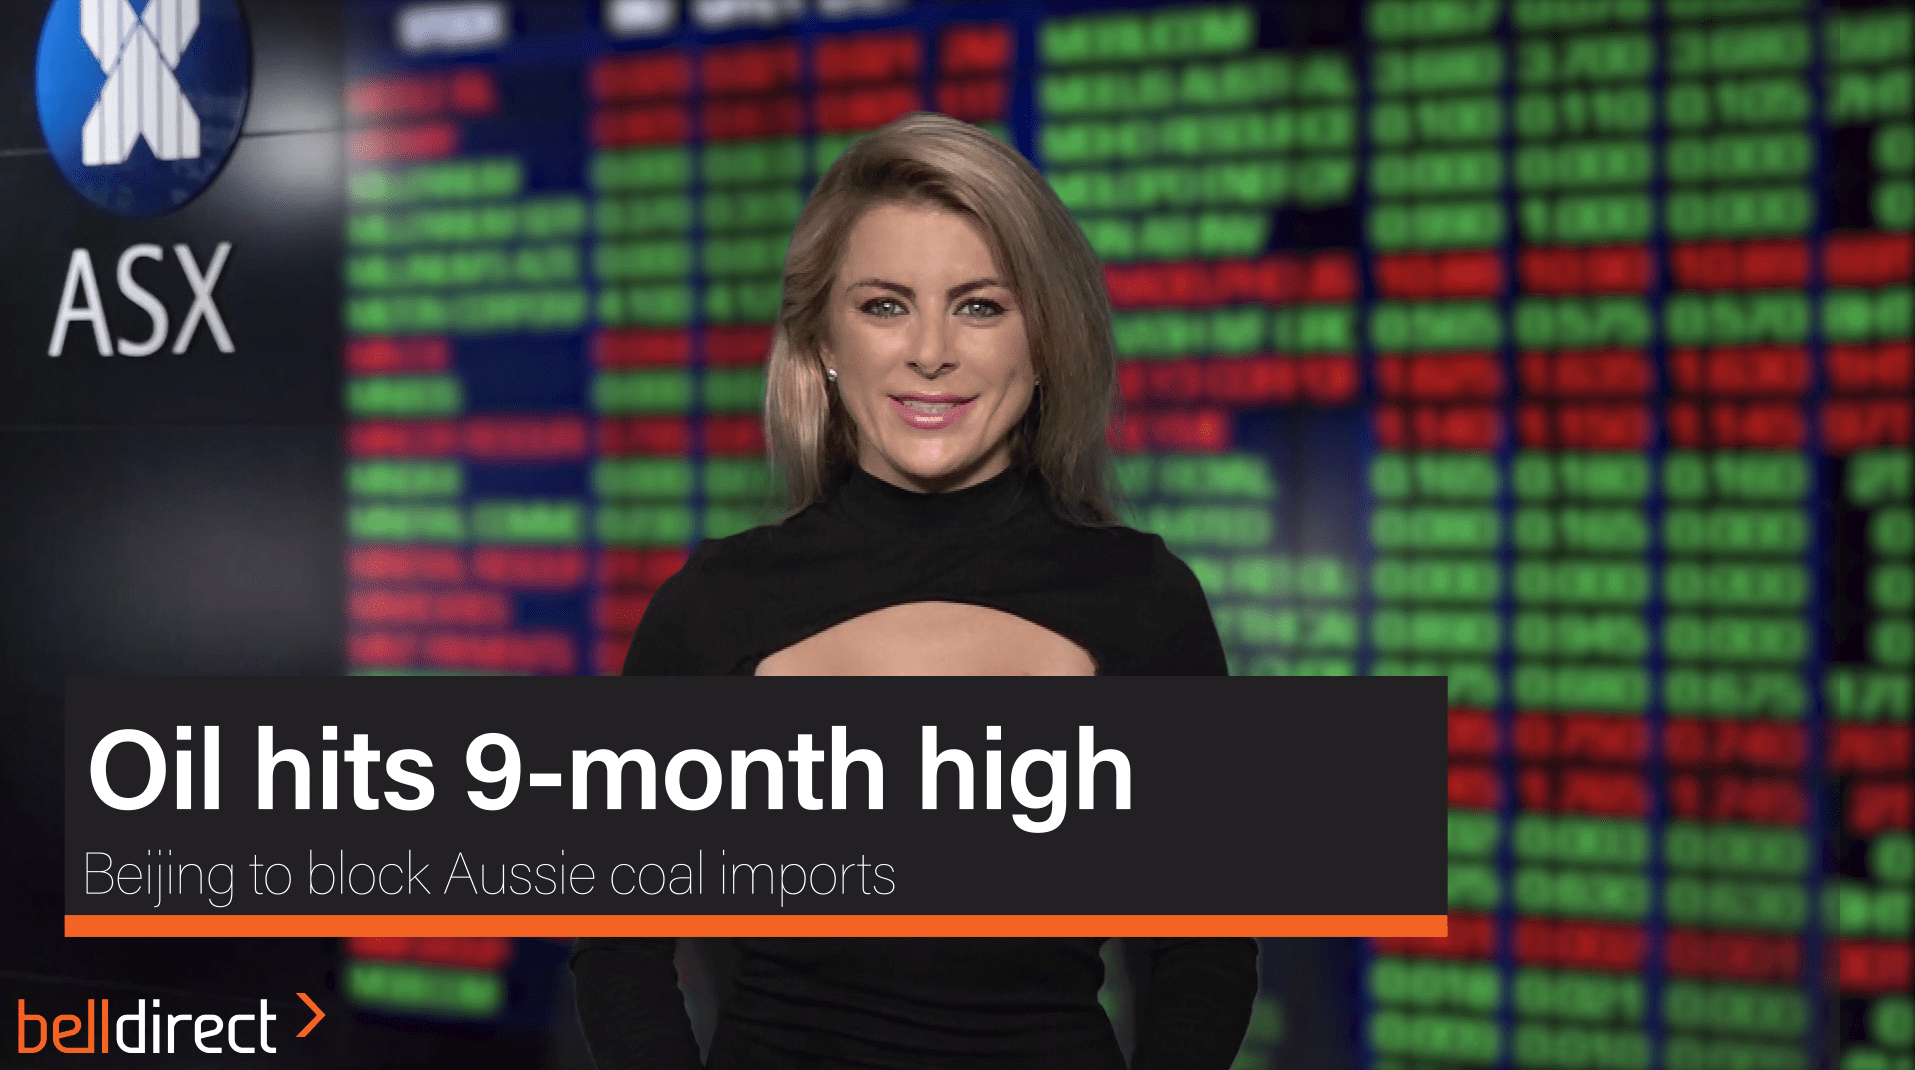 Oil hits 9-month high